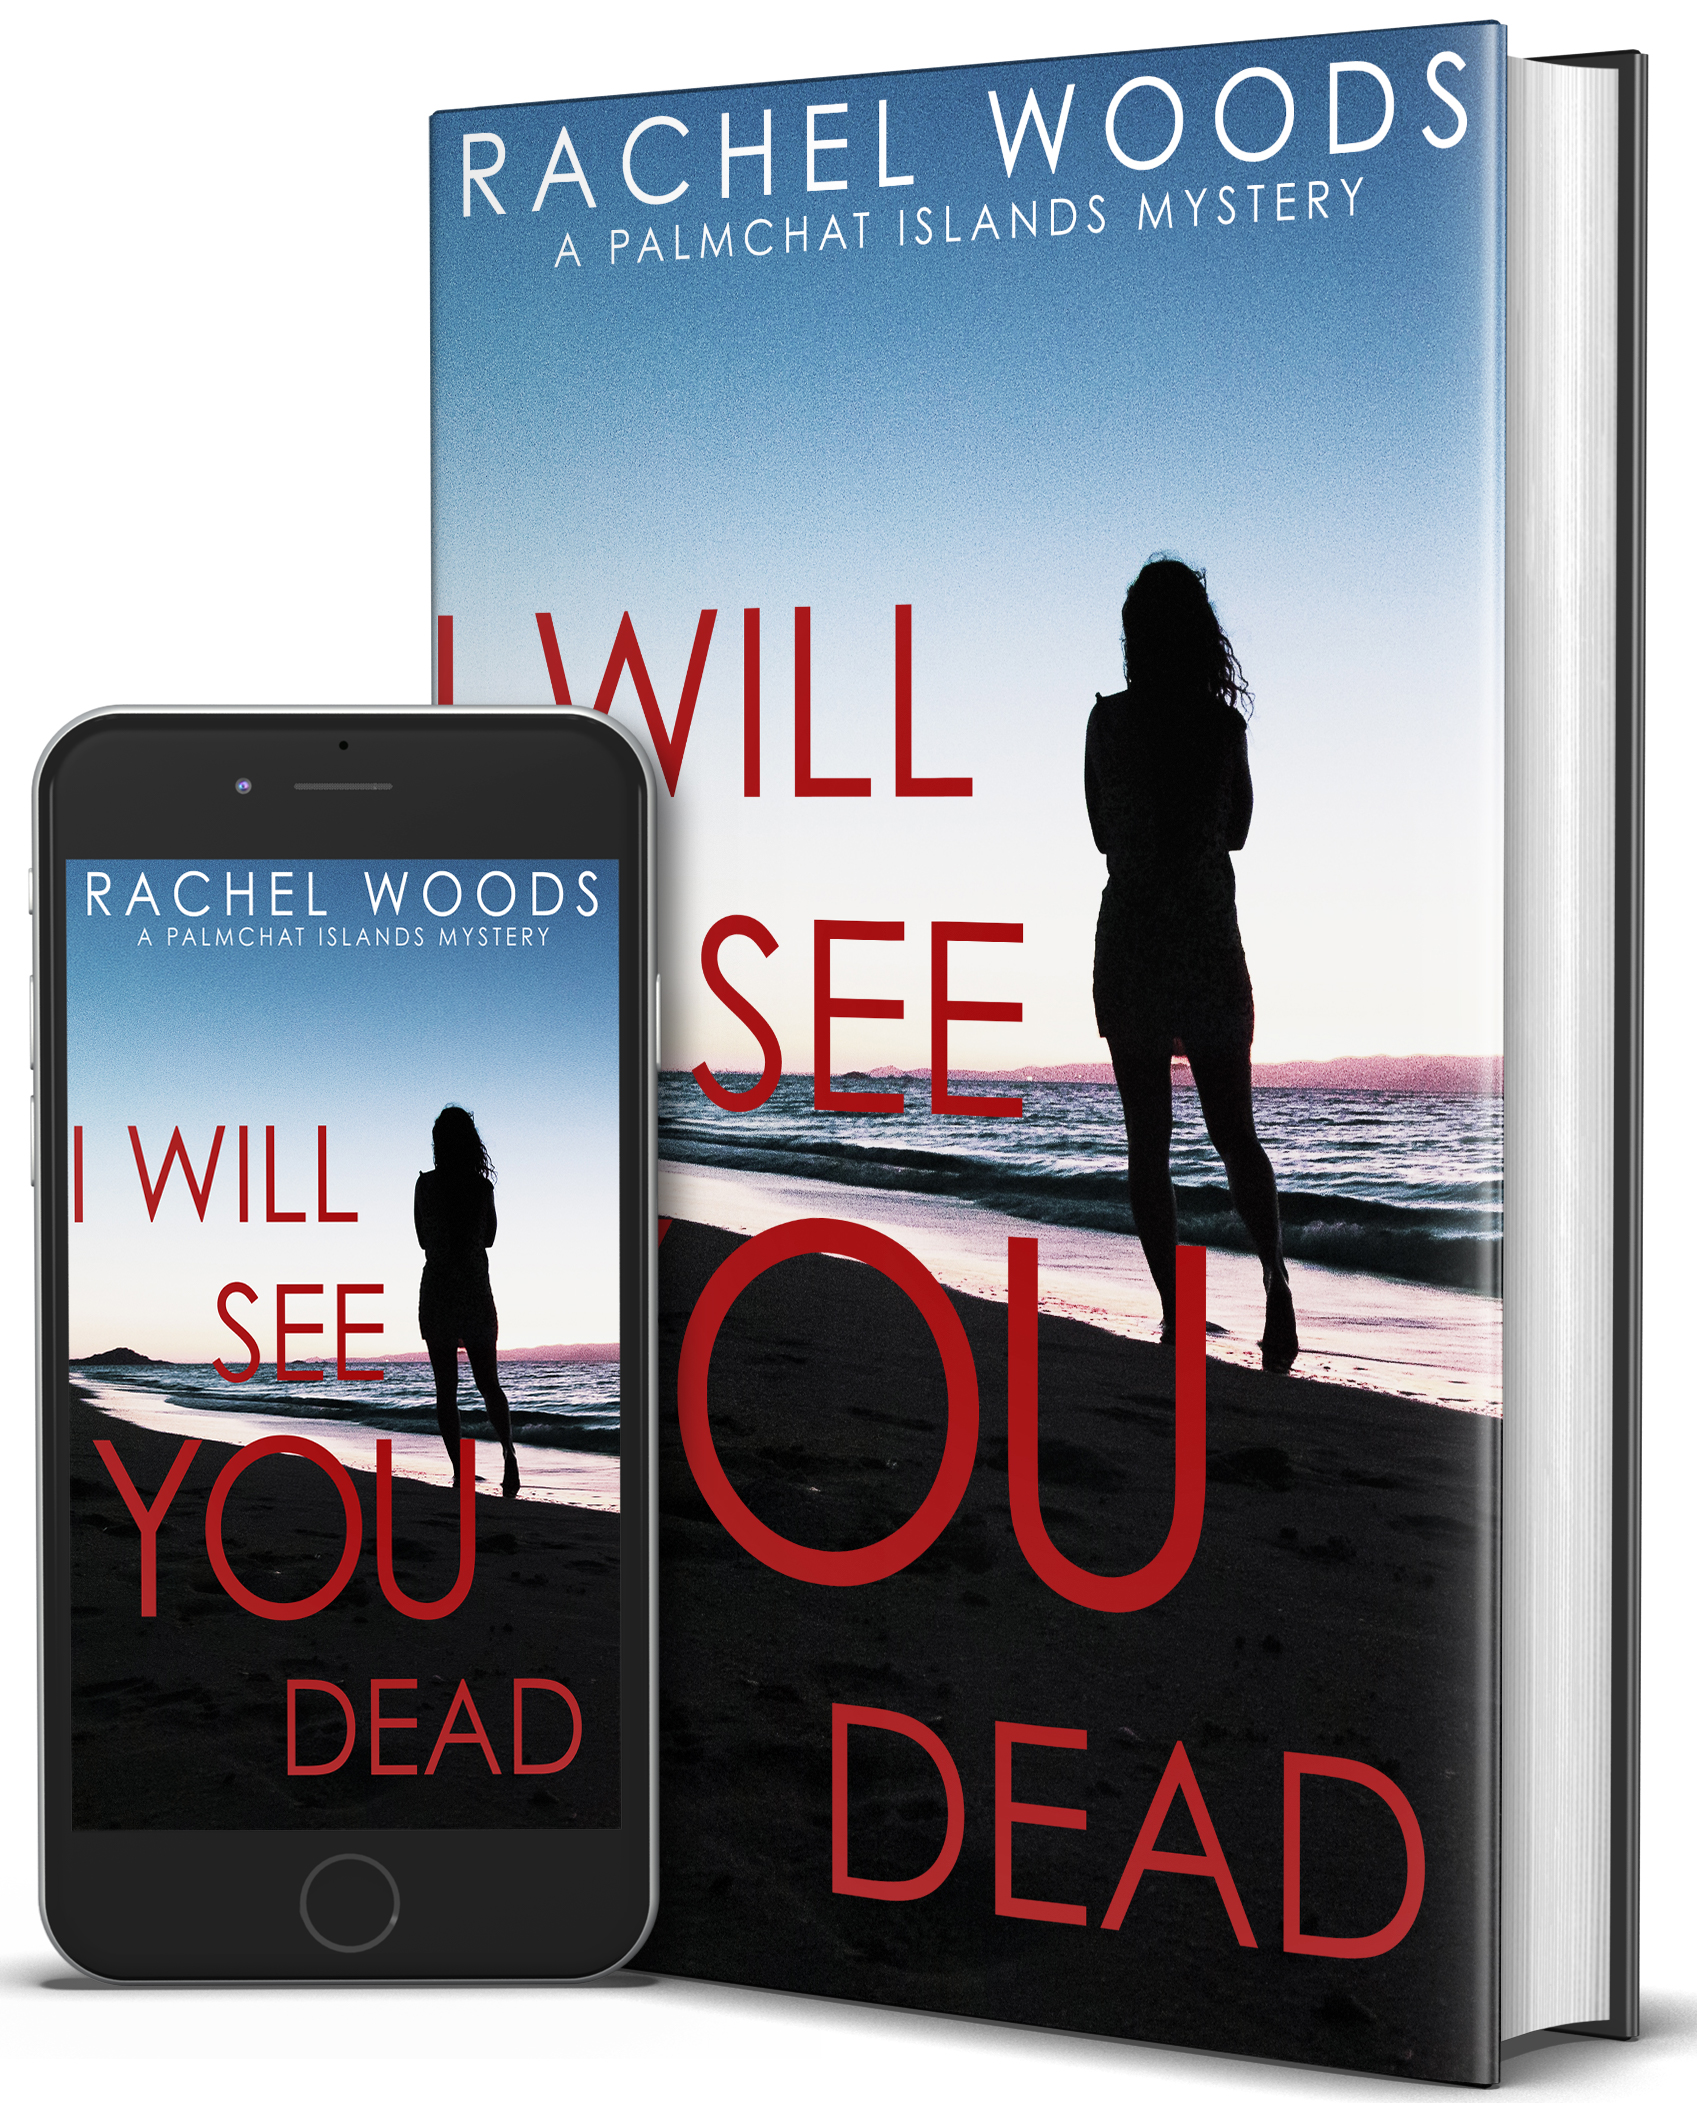 I Will See You Dead - Cropped 042-iPhone6-with-Dust-Jacket-Book-COVERVAULT